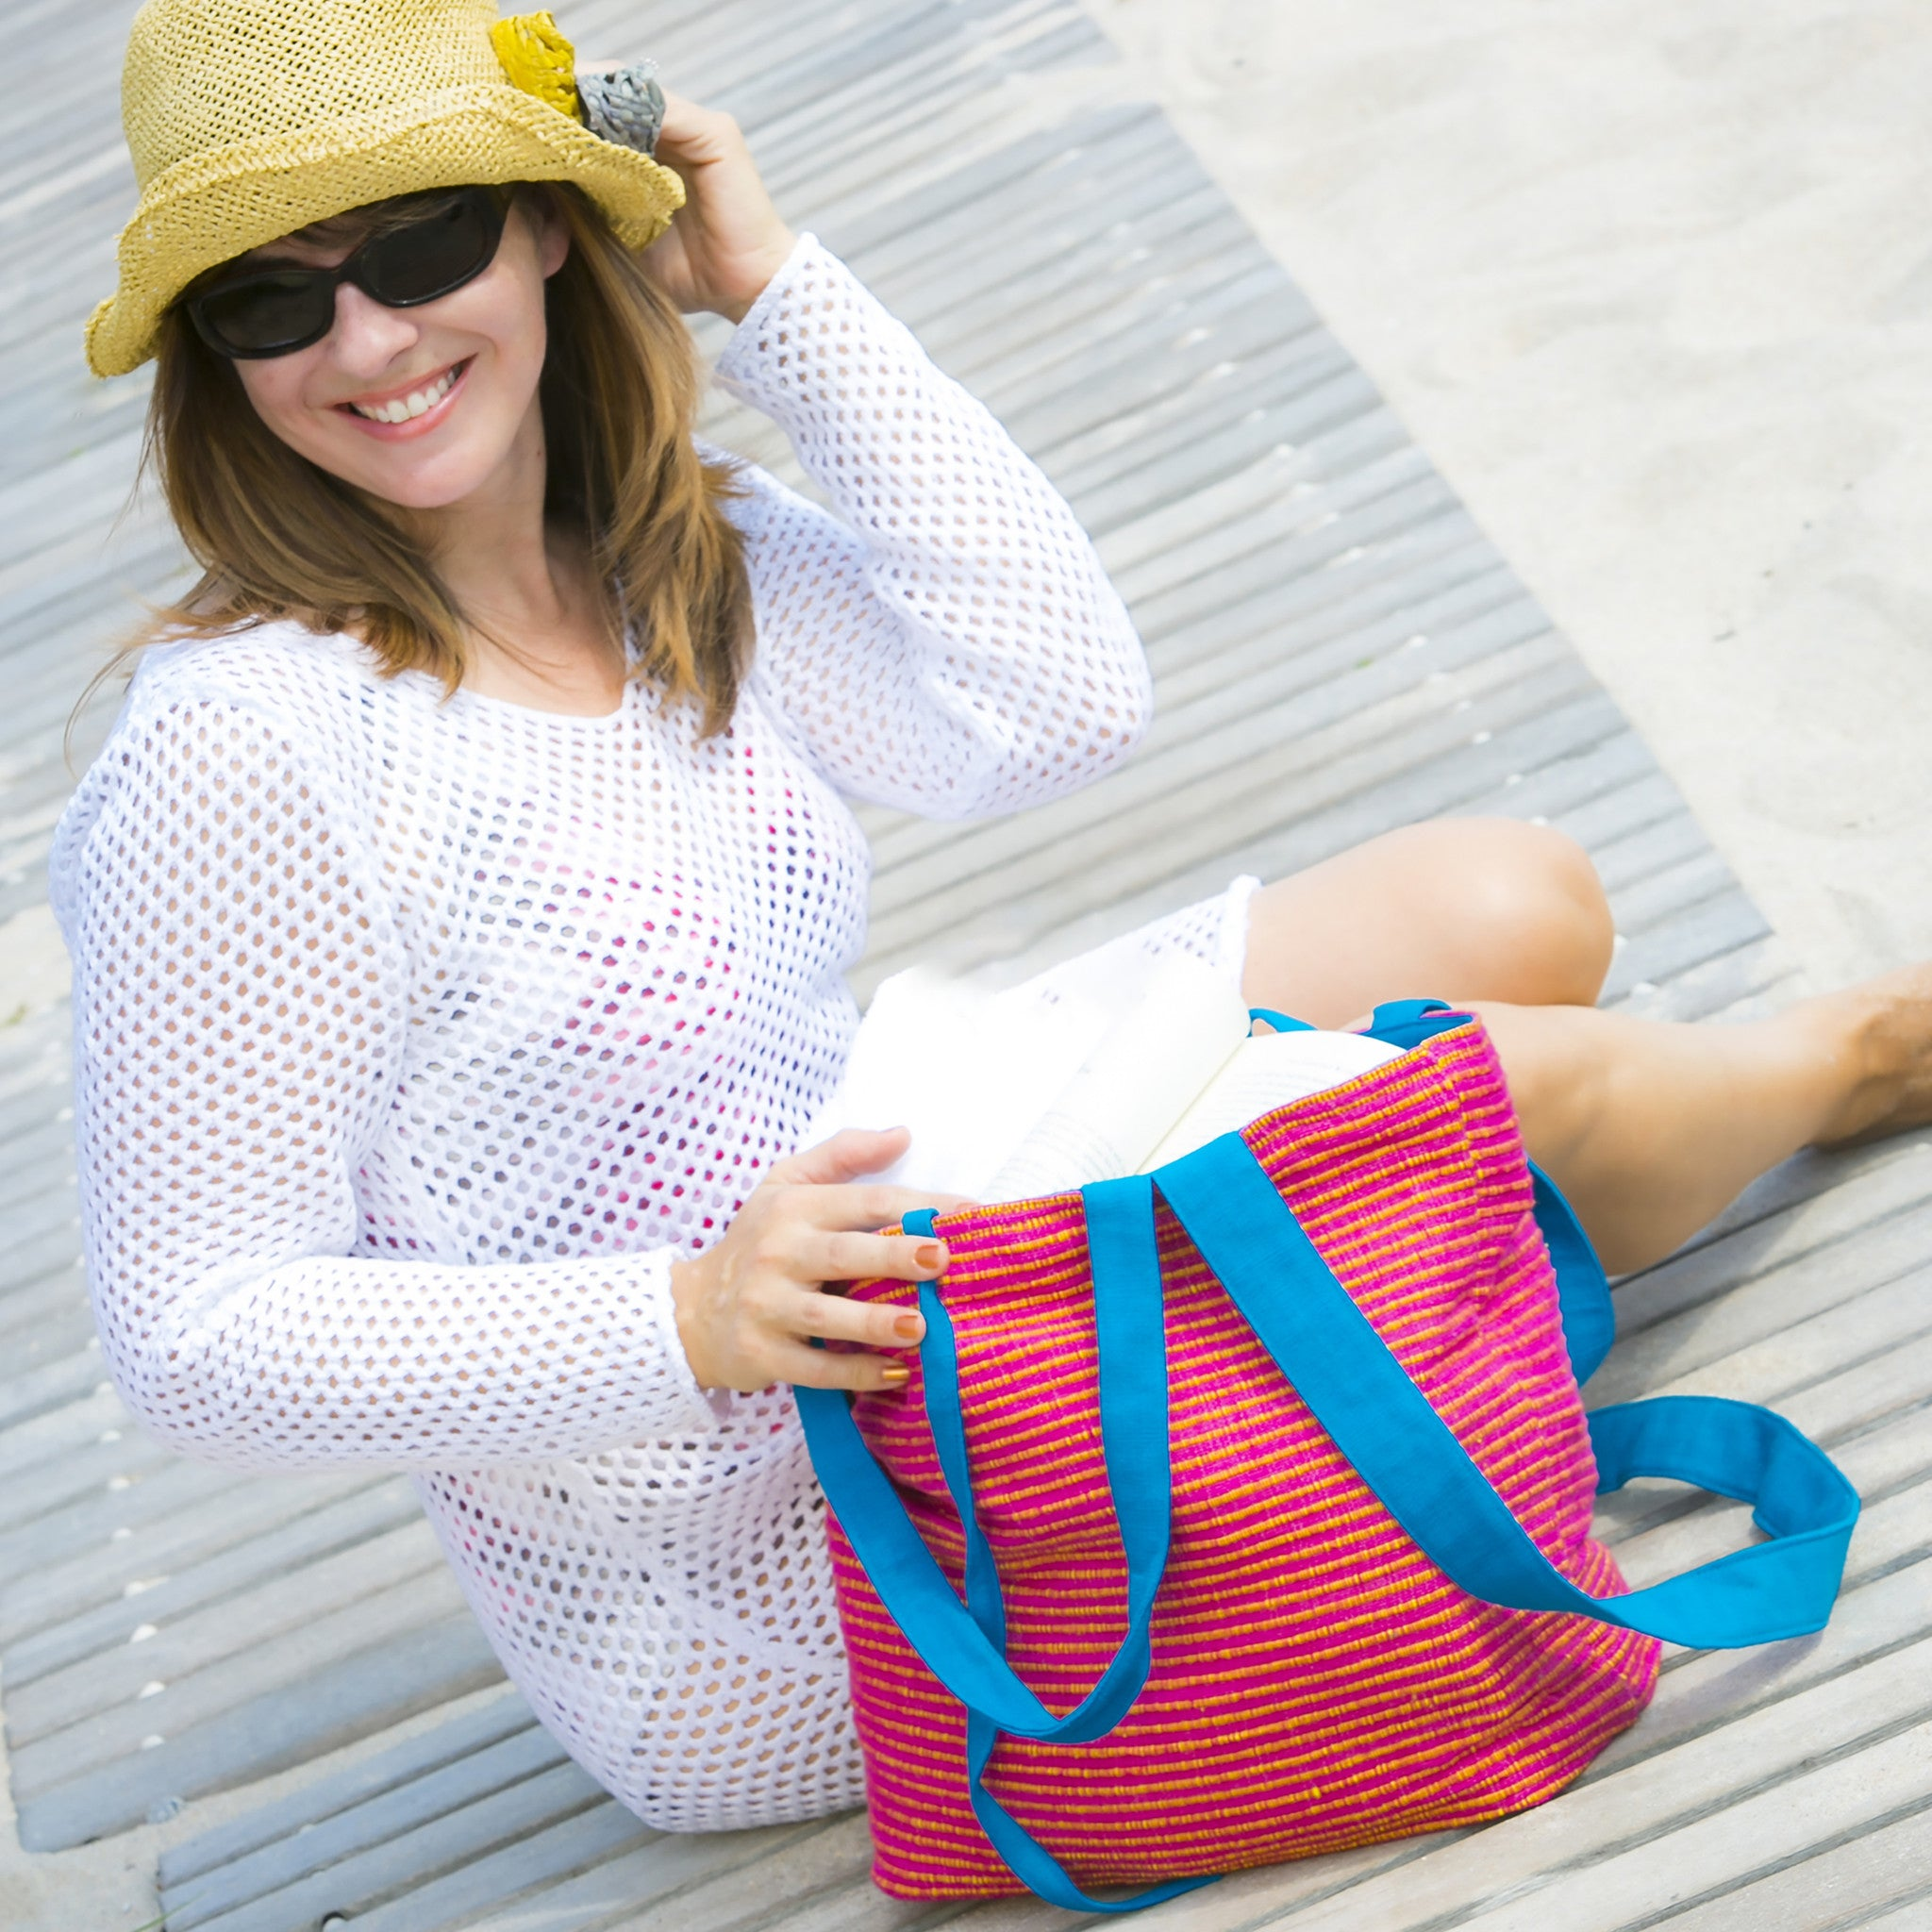 The Everyday Crossbody/Tote - Great for a day at the beach! (sample fabric shown)